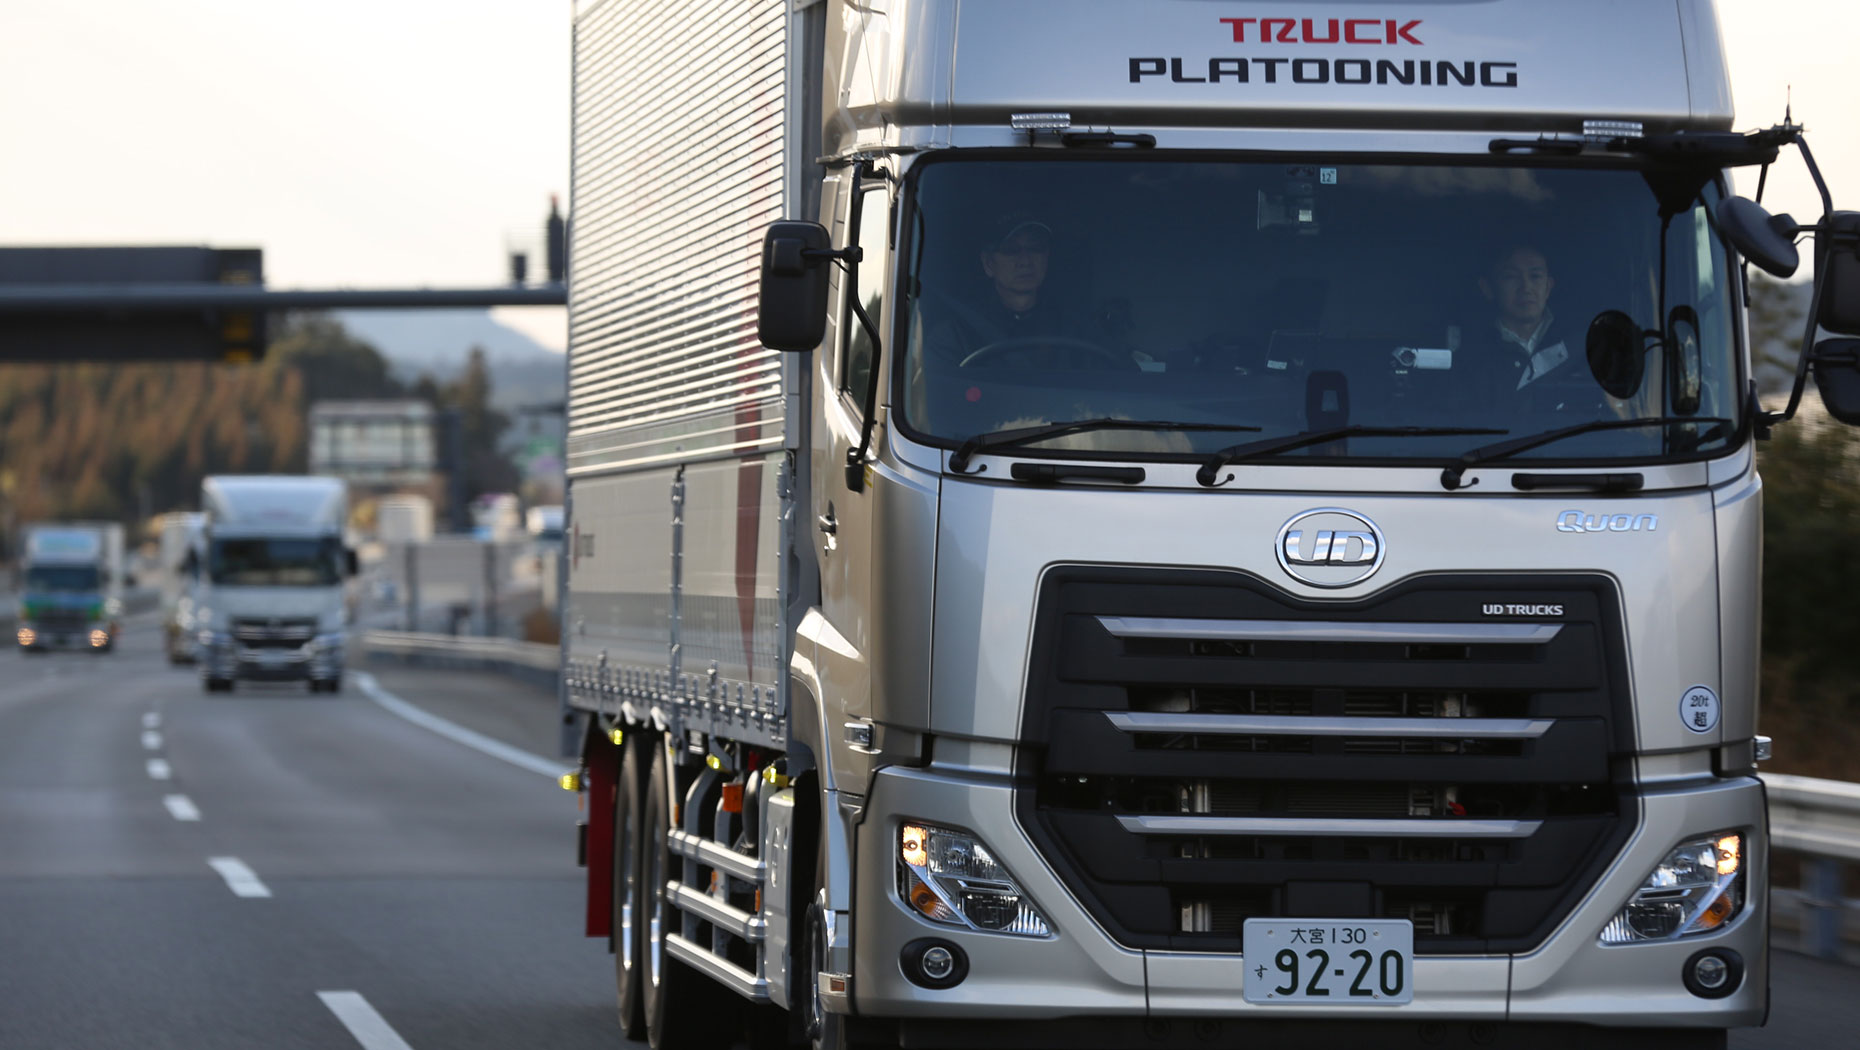 UD Trucks in Japans first truck-platooning operation | Volvo Group